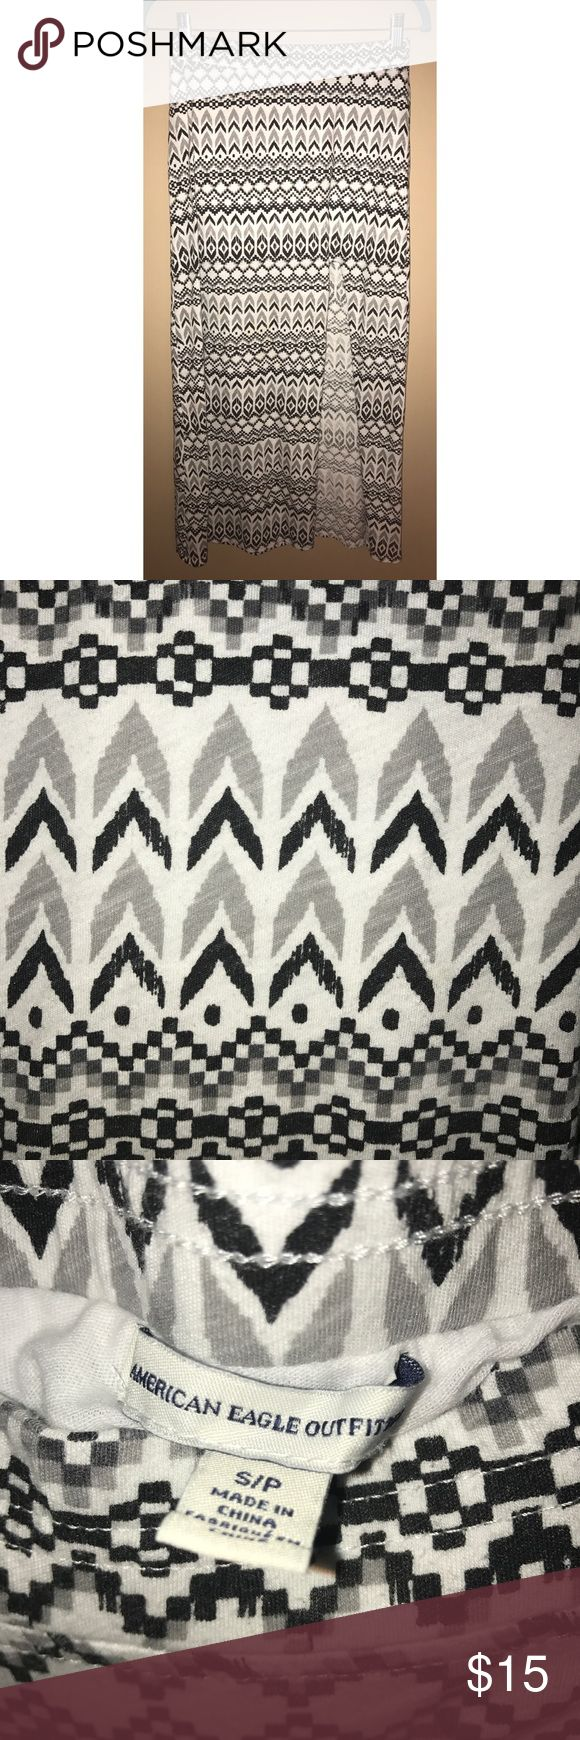 American Eagle Tribal Print Maxi Skirt American Eagle Outfitters Tribal Print Maxi Skirt. Size Small. Black/White/Grey. Side slit, attached white slip underneath. Materials: 60% Cotton 40% Polyester. Great Condition! American Eagle Outfitters Skirts Maxi